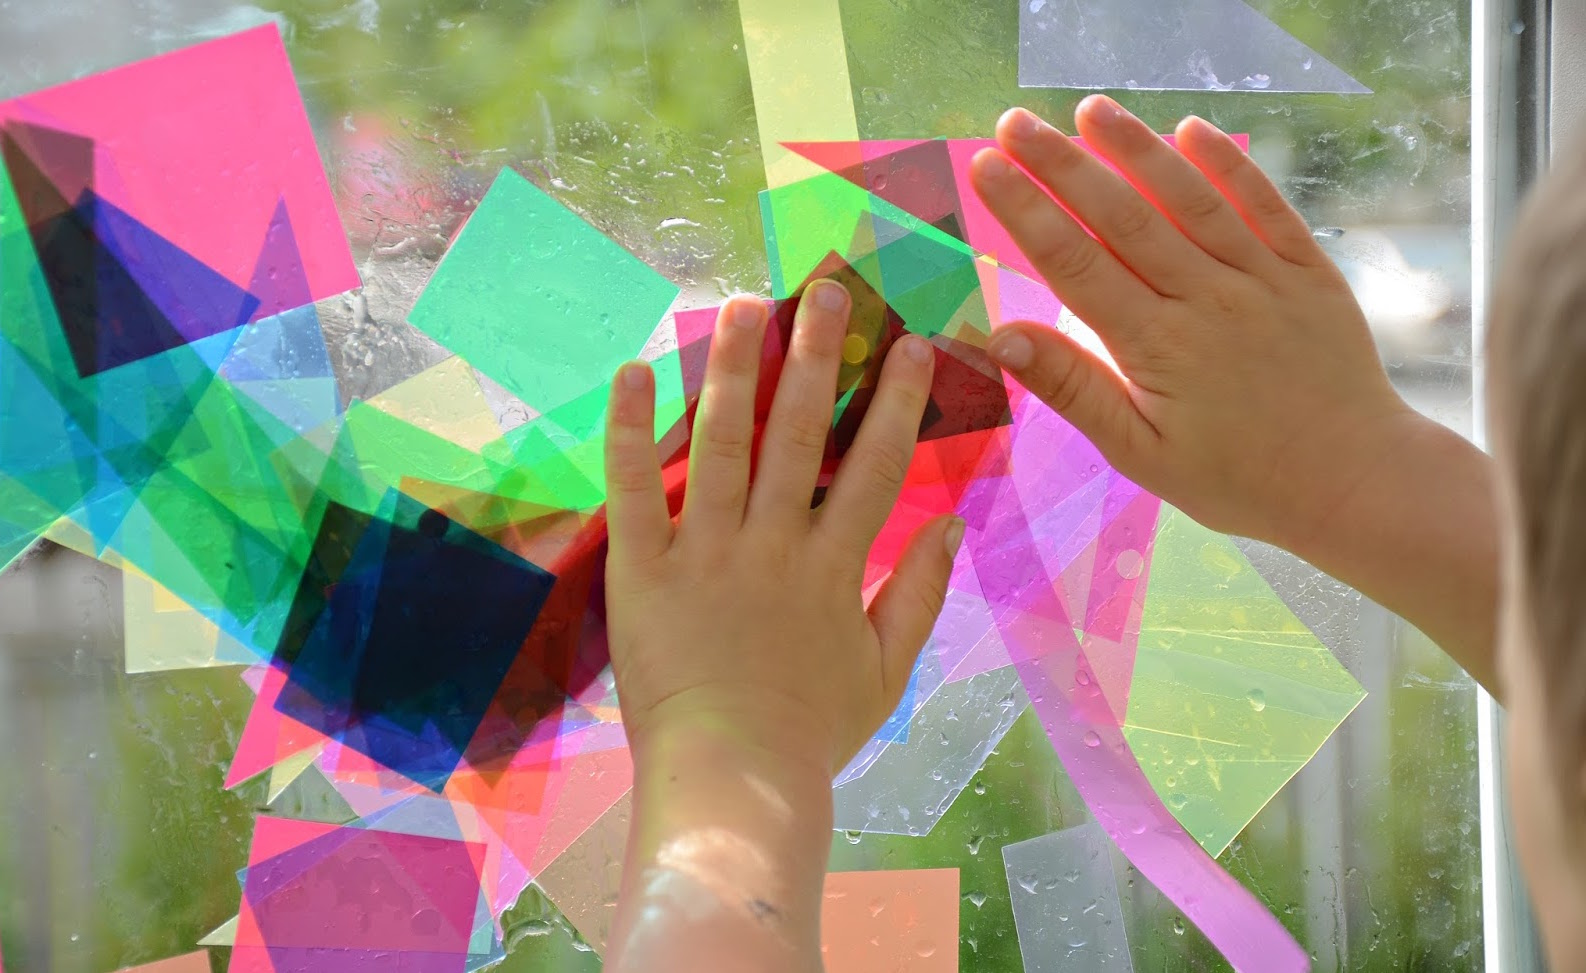 Exploring-Reggio-Art-and-Painting-Explorations-An-Everyday-Story.jpg